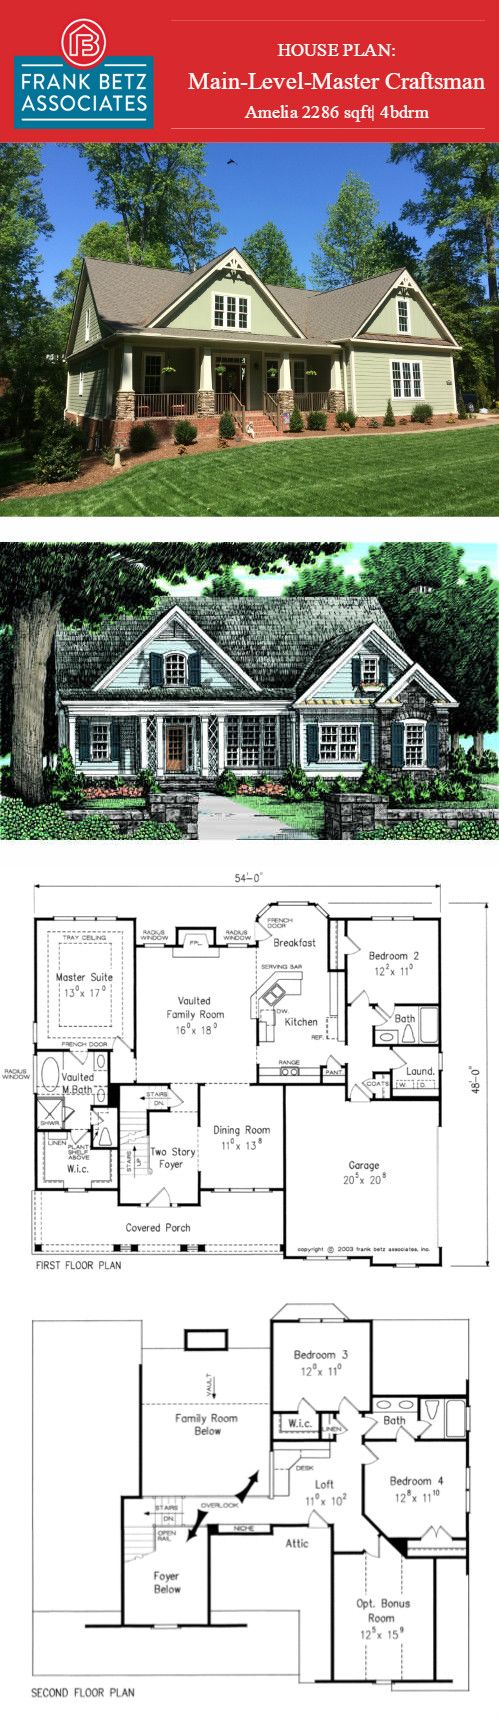 Story Foyer House Plans : Best ideas about story foyer on pinterest two